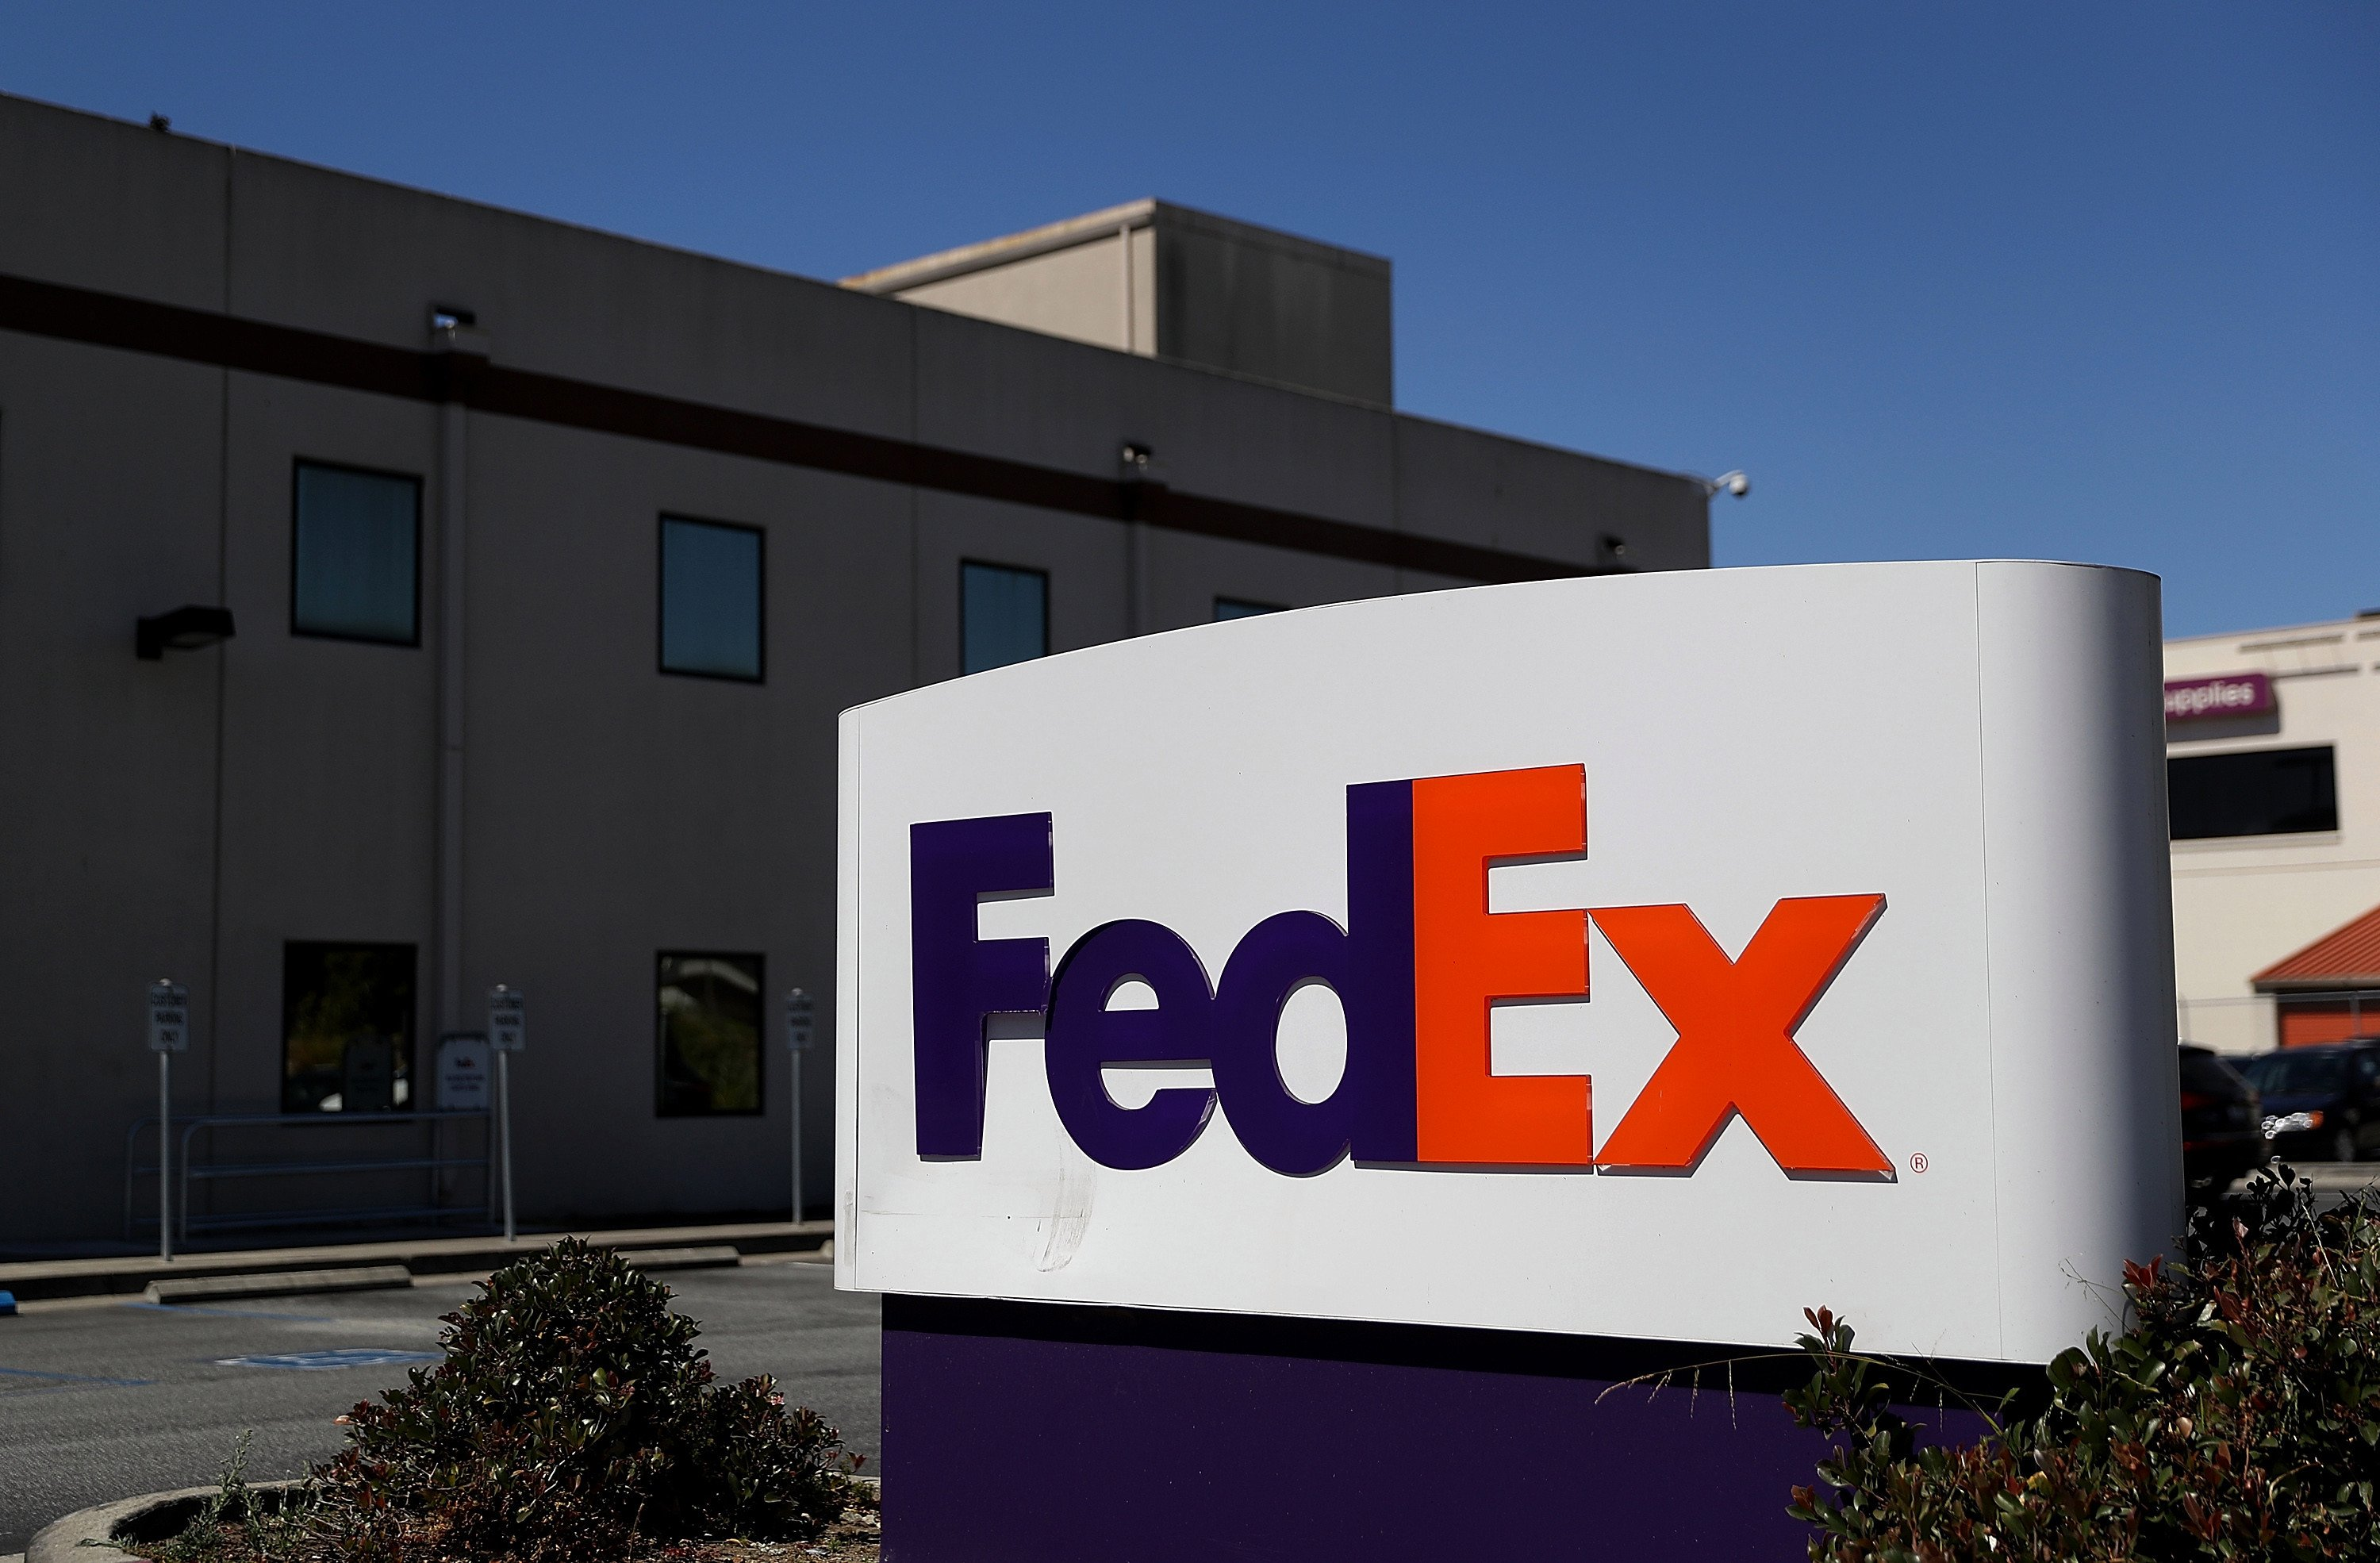 FedEx doesn't agree with NRA on assault rifles but won't cut ties